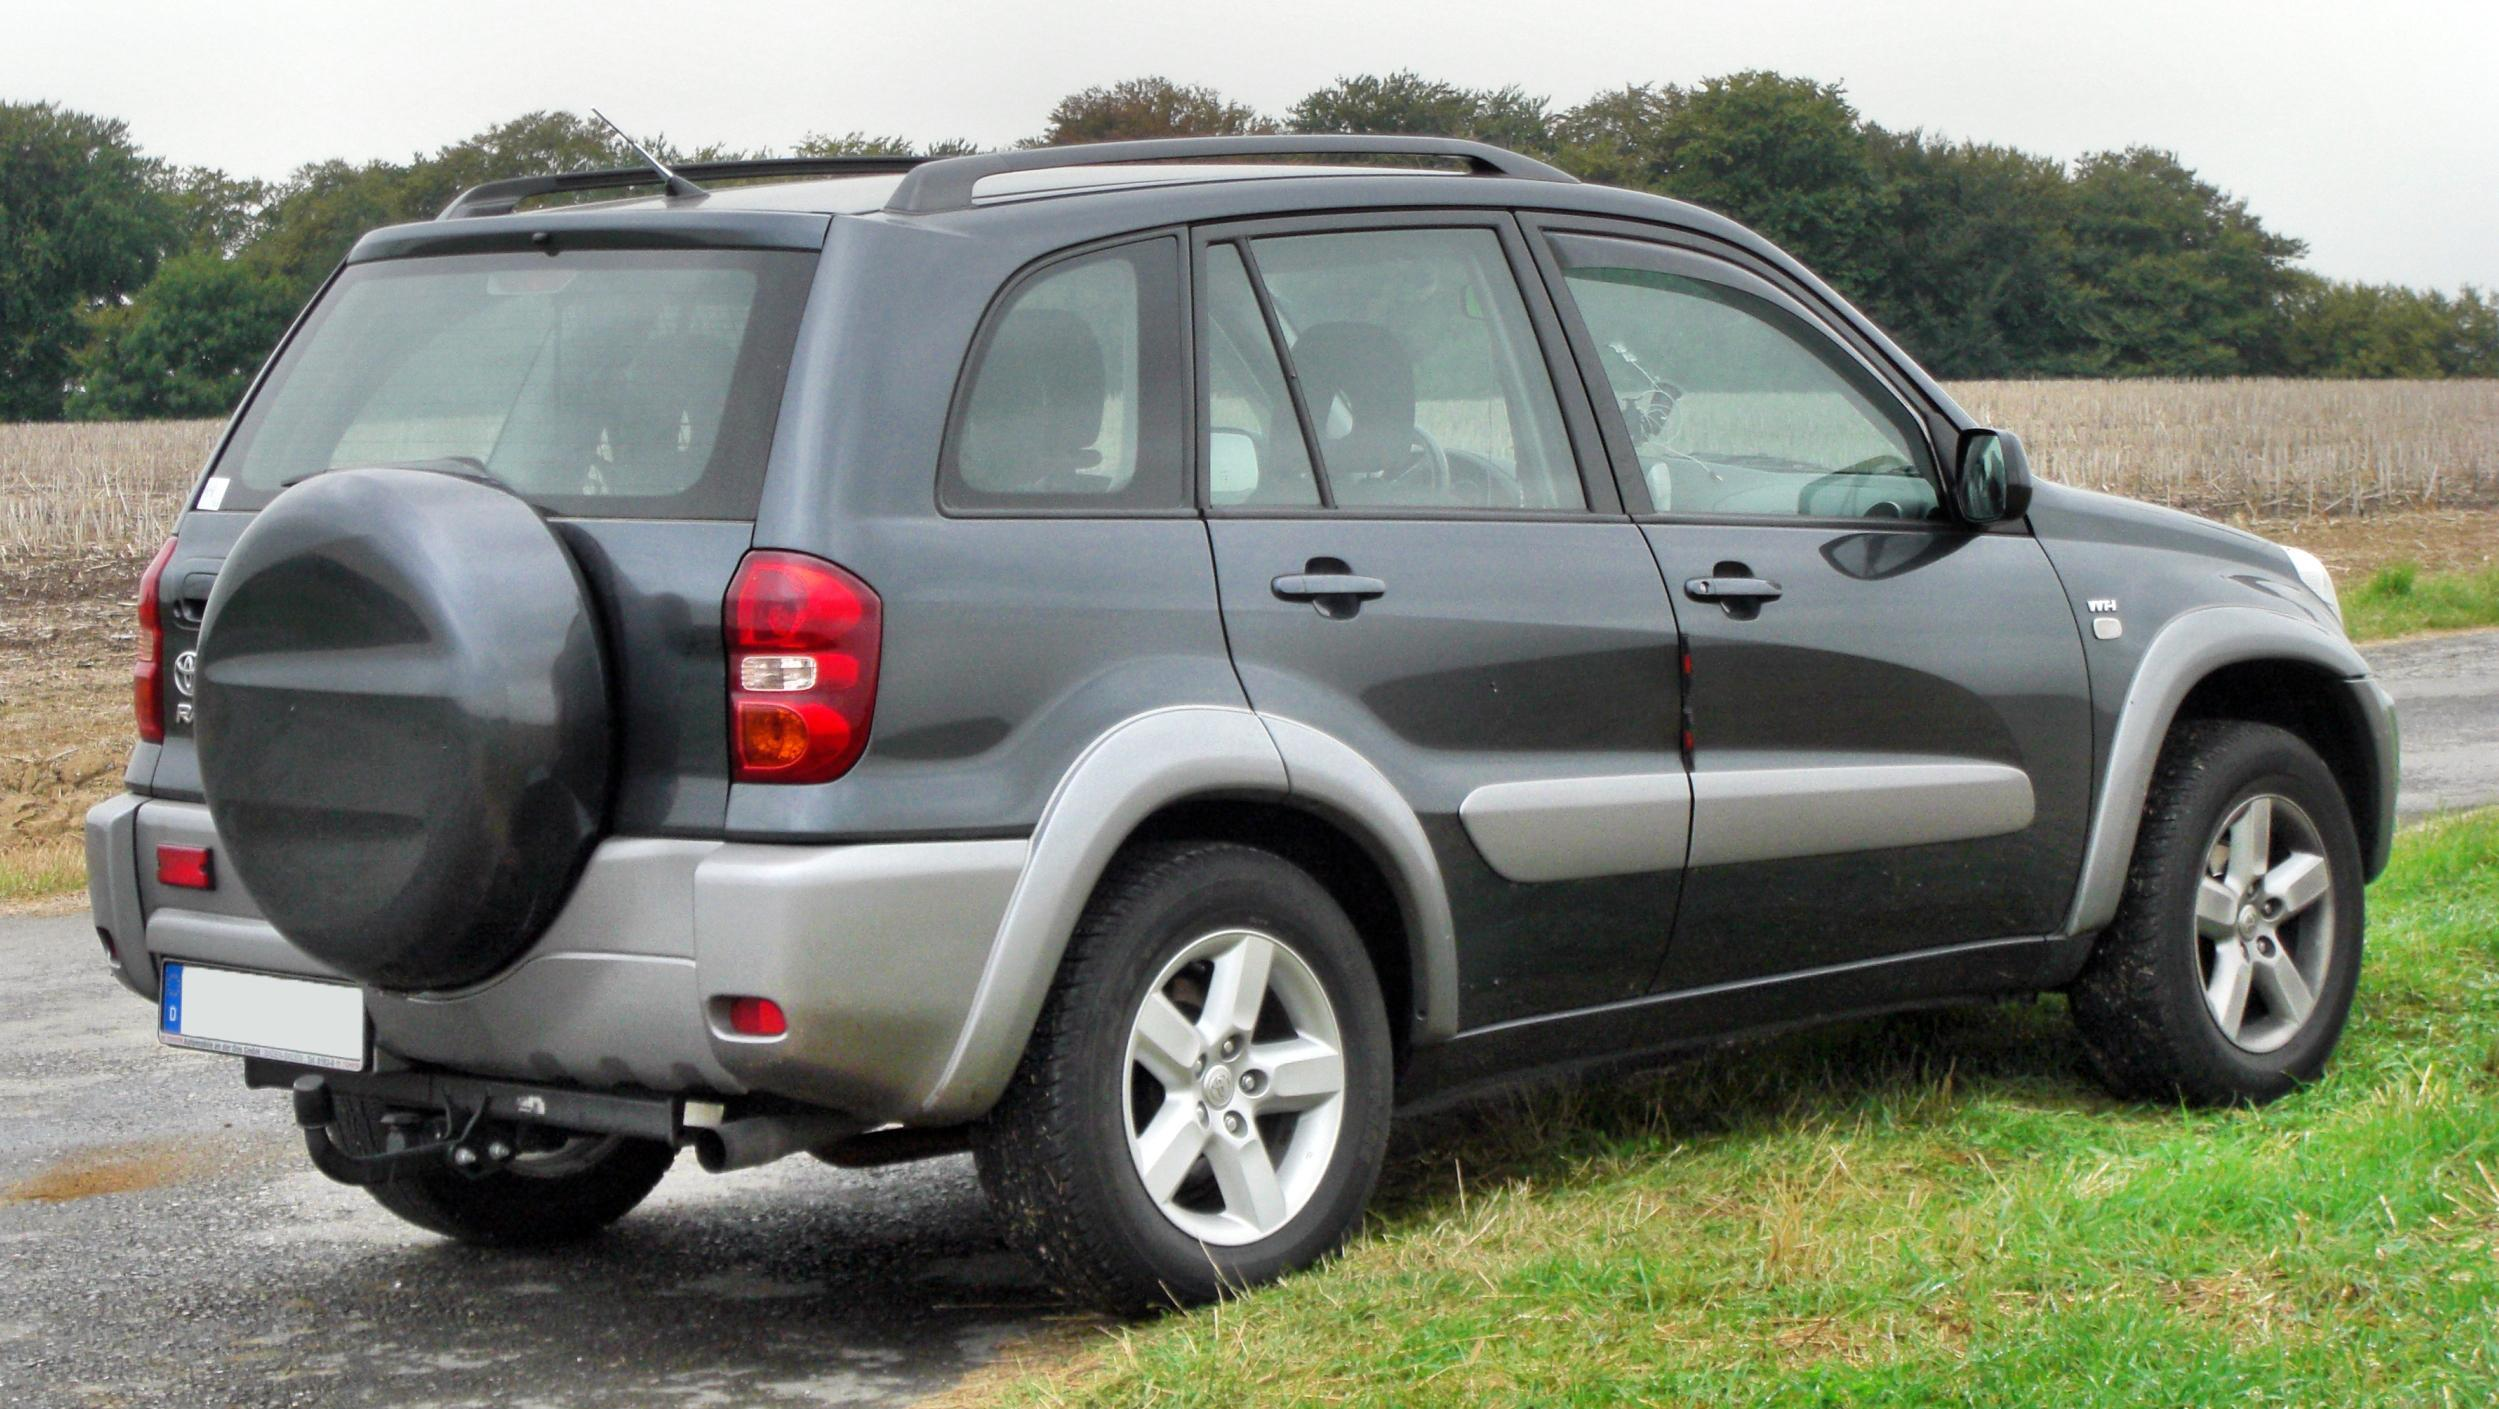 file toyota rav4 ii facelift rear wikimedia commons. Black Bedroom Furniture Sets. Home Design Ideas